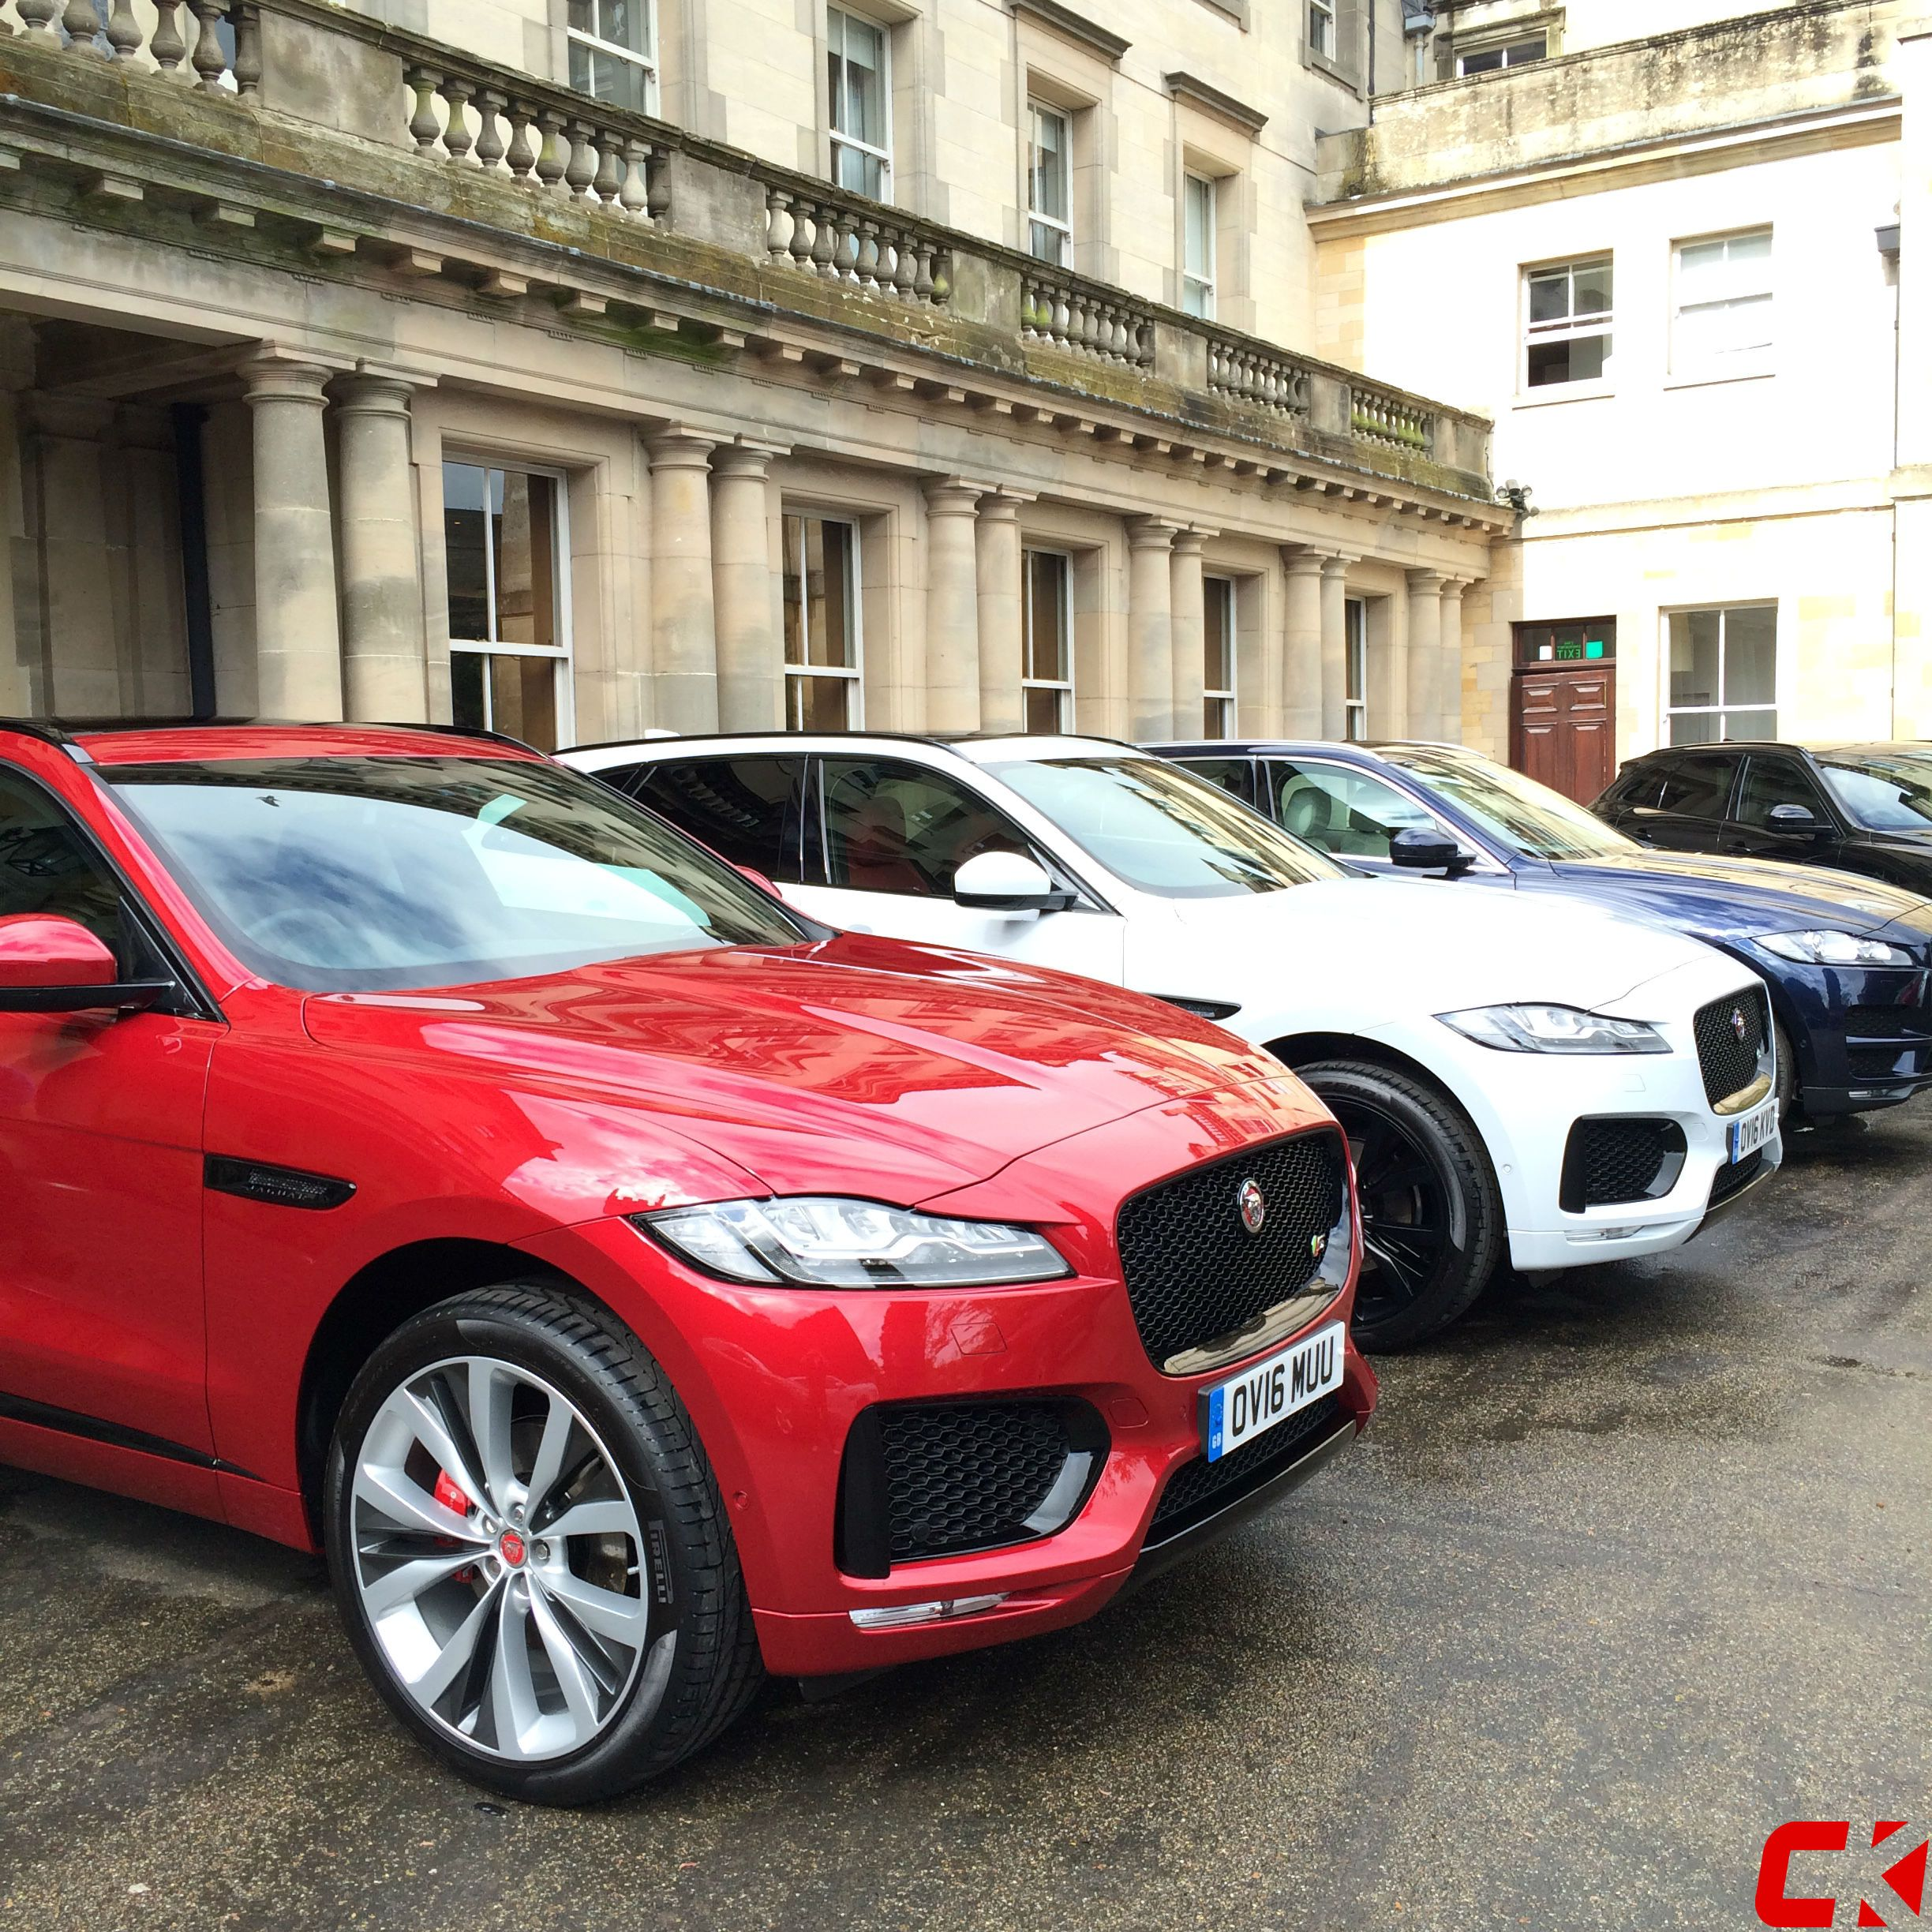 Best 20 sporty suv ideas on pinterest dream cars bmw 116 and cool cars